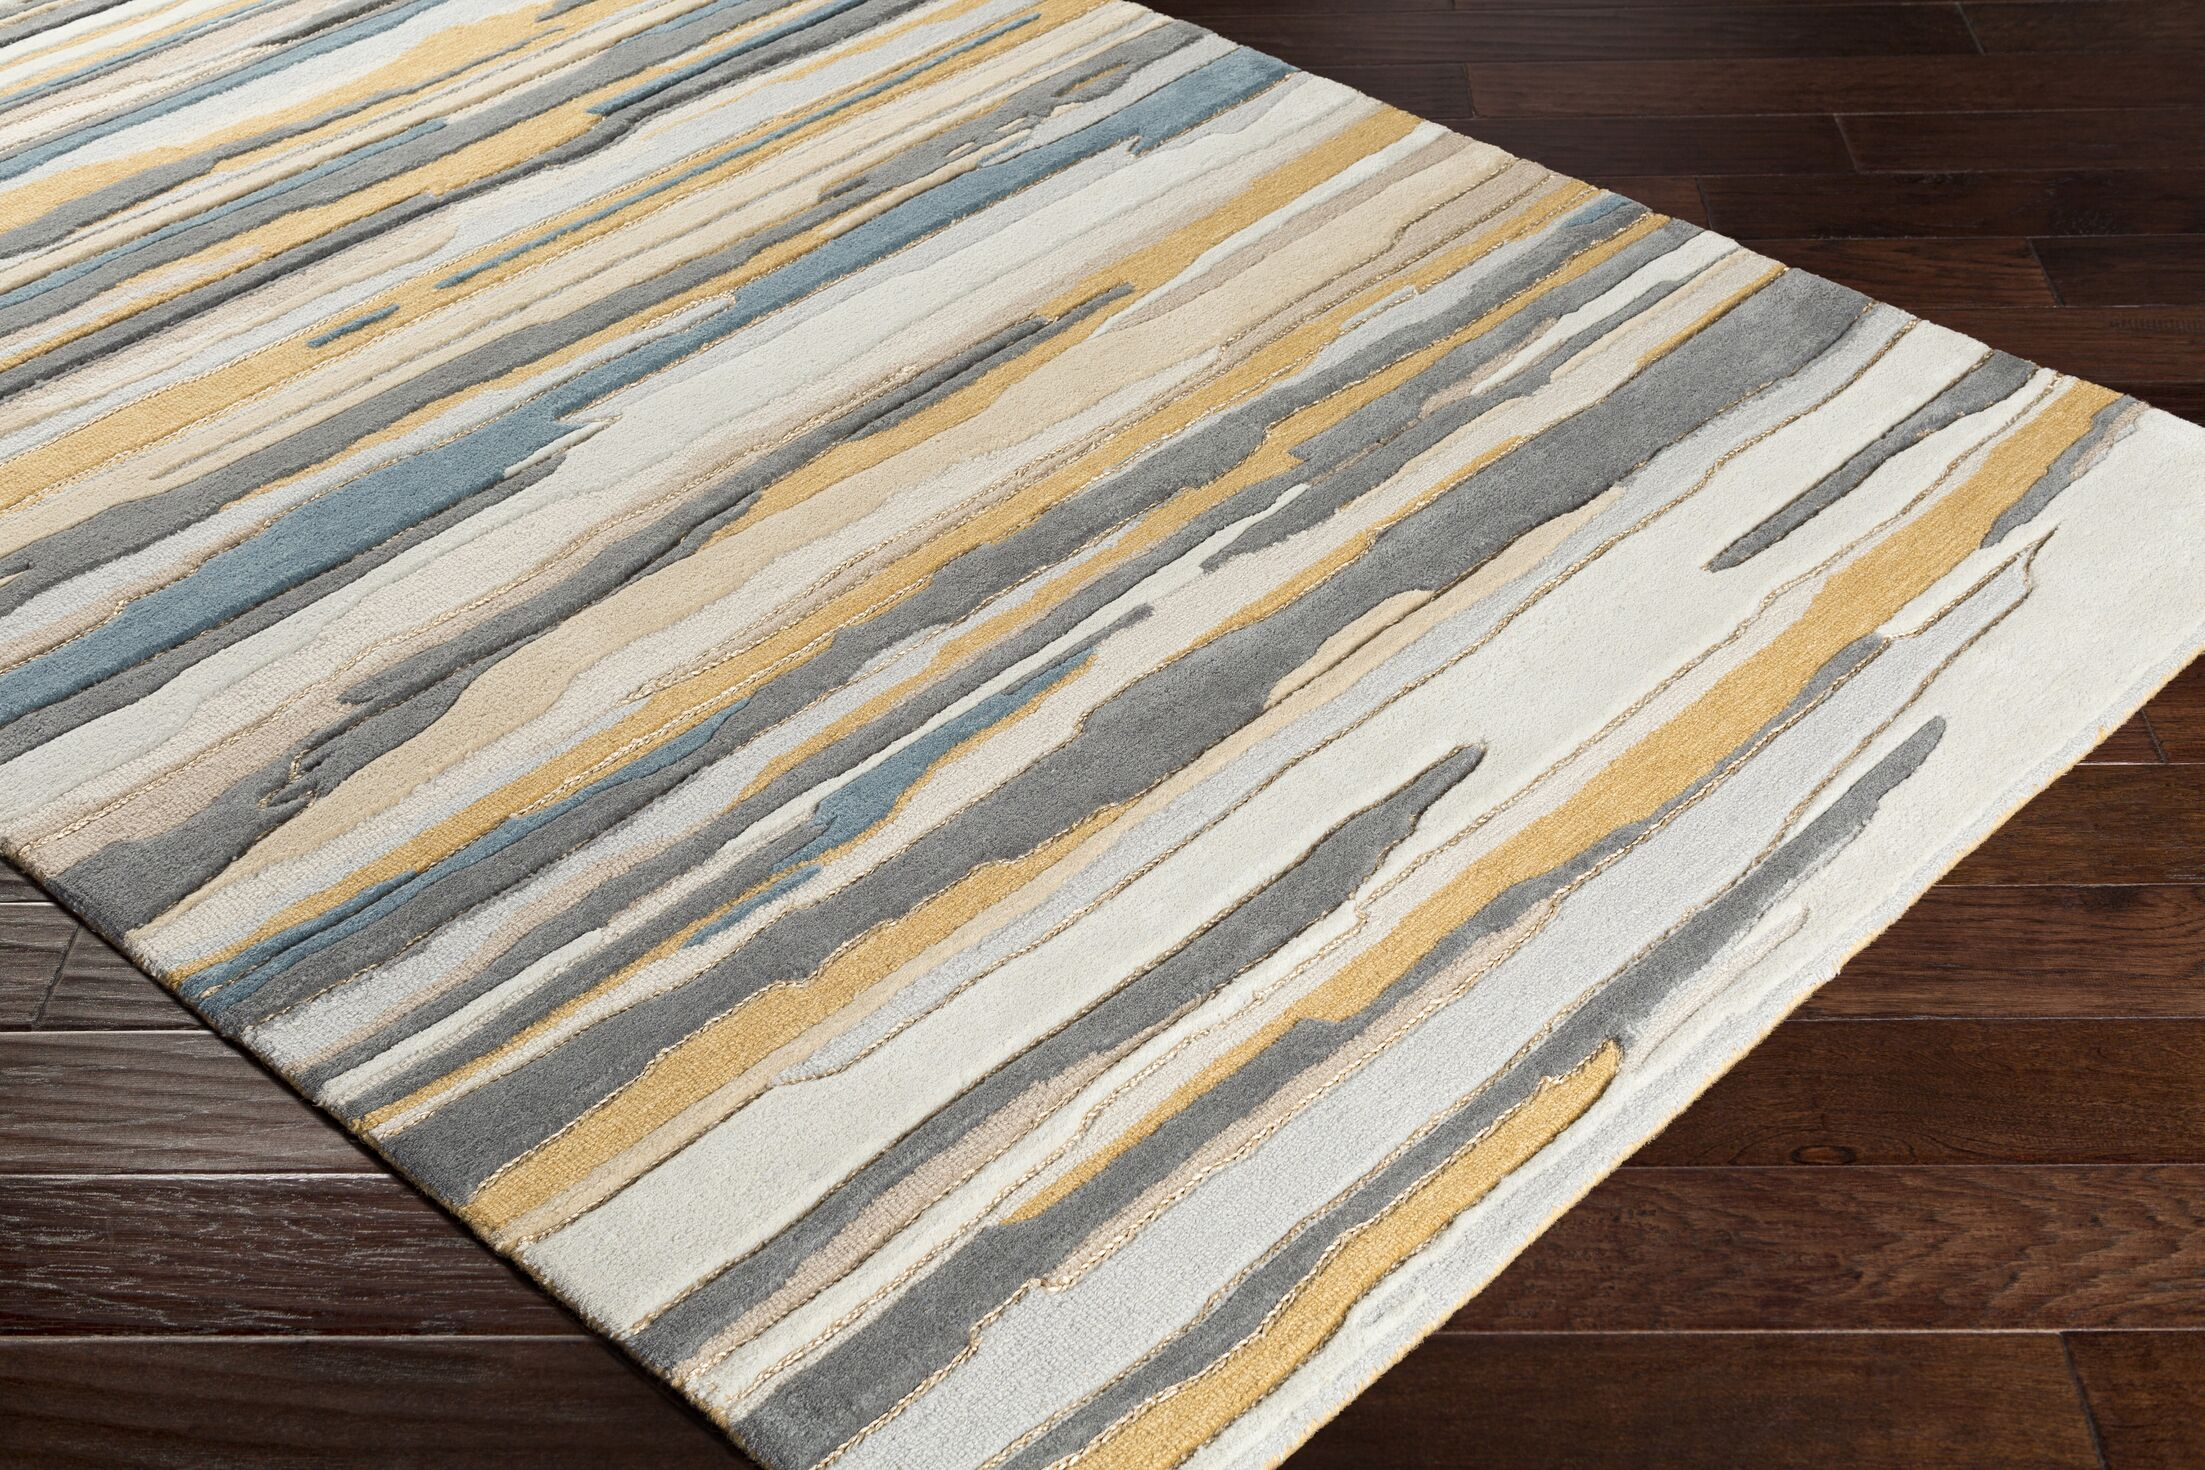 Farlow Hand-Tufted Gray/Gold Area Rug Rug Size: Rectangle 8' x 10'